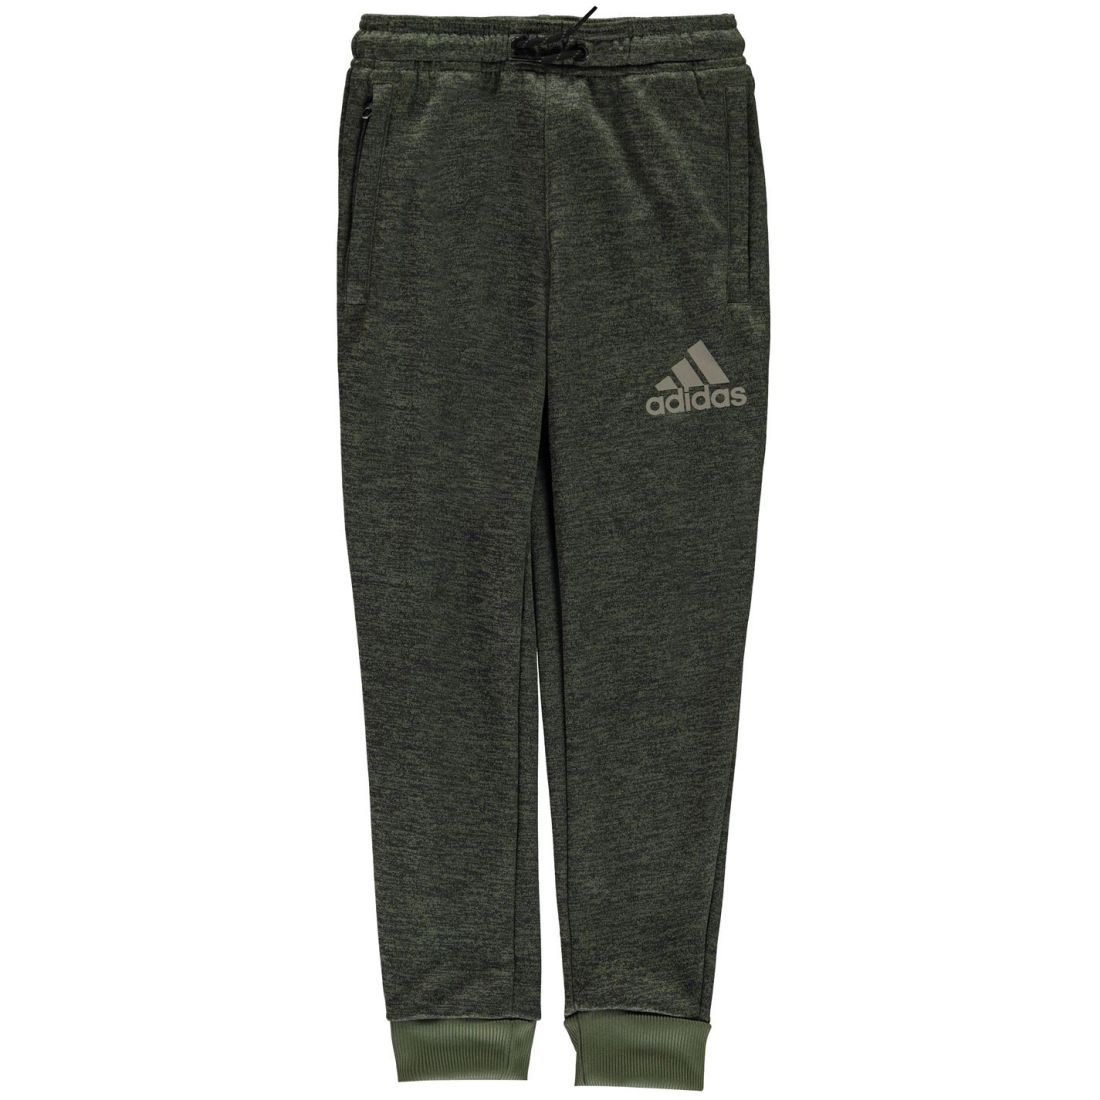 56f1b047a Image is loading adidas-Prime-Plus-Fleece-Pants-Youngster-Boys-Jogging-